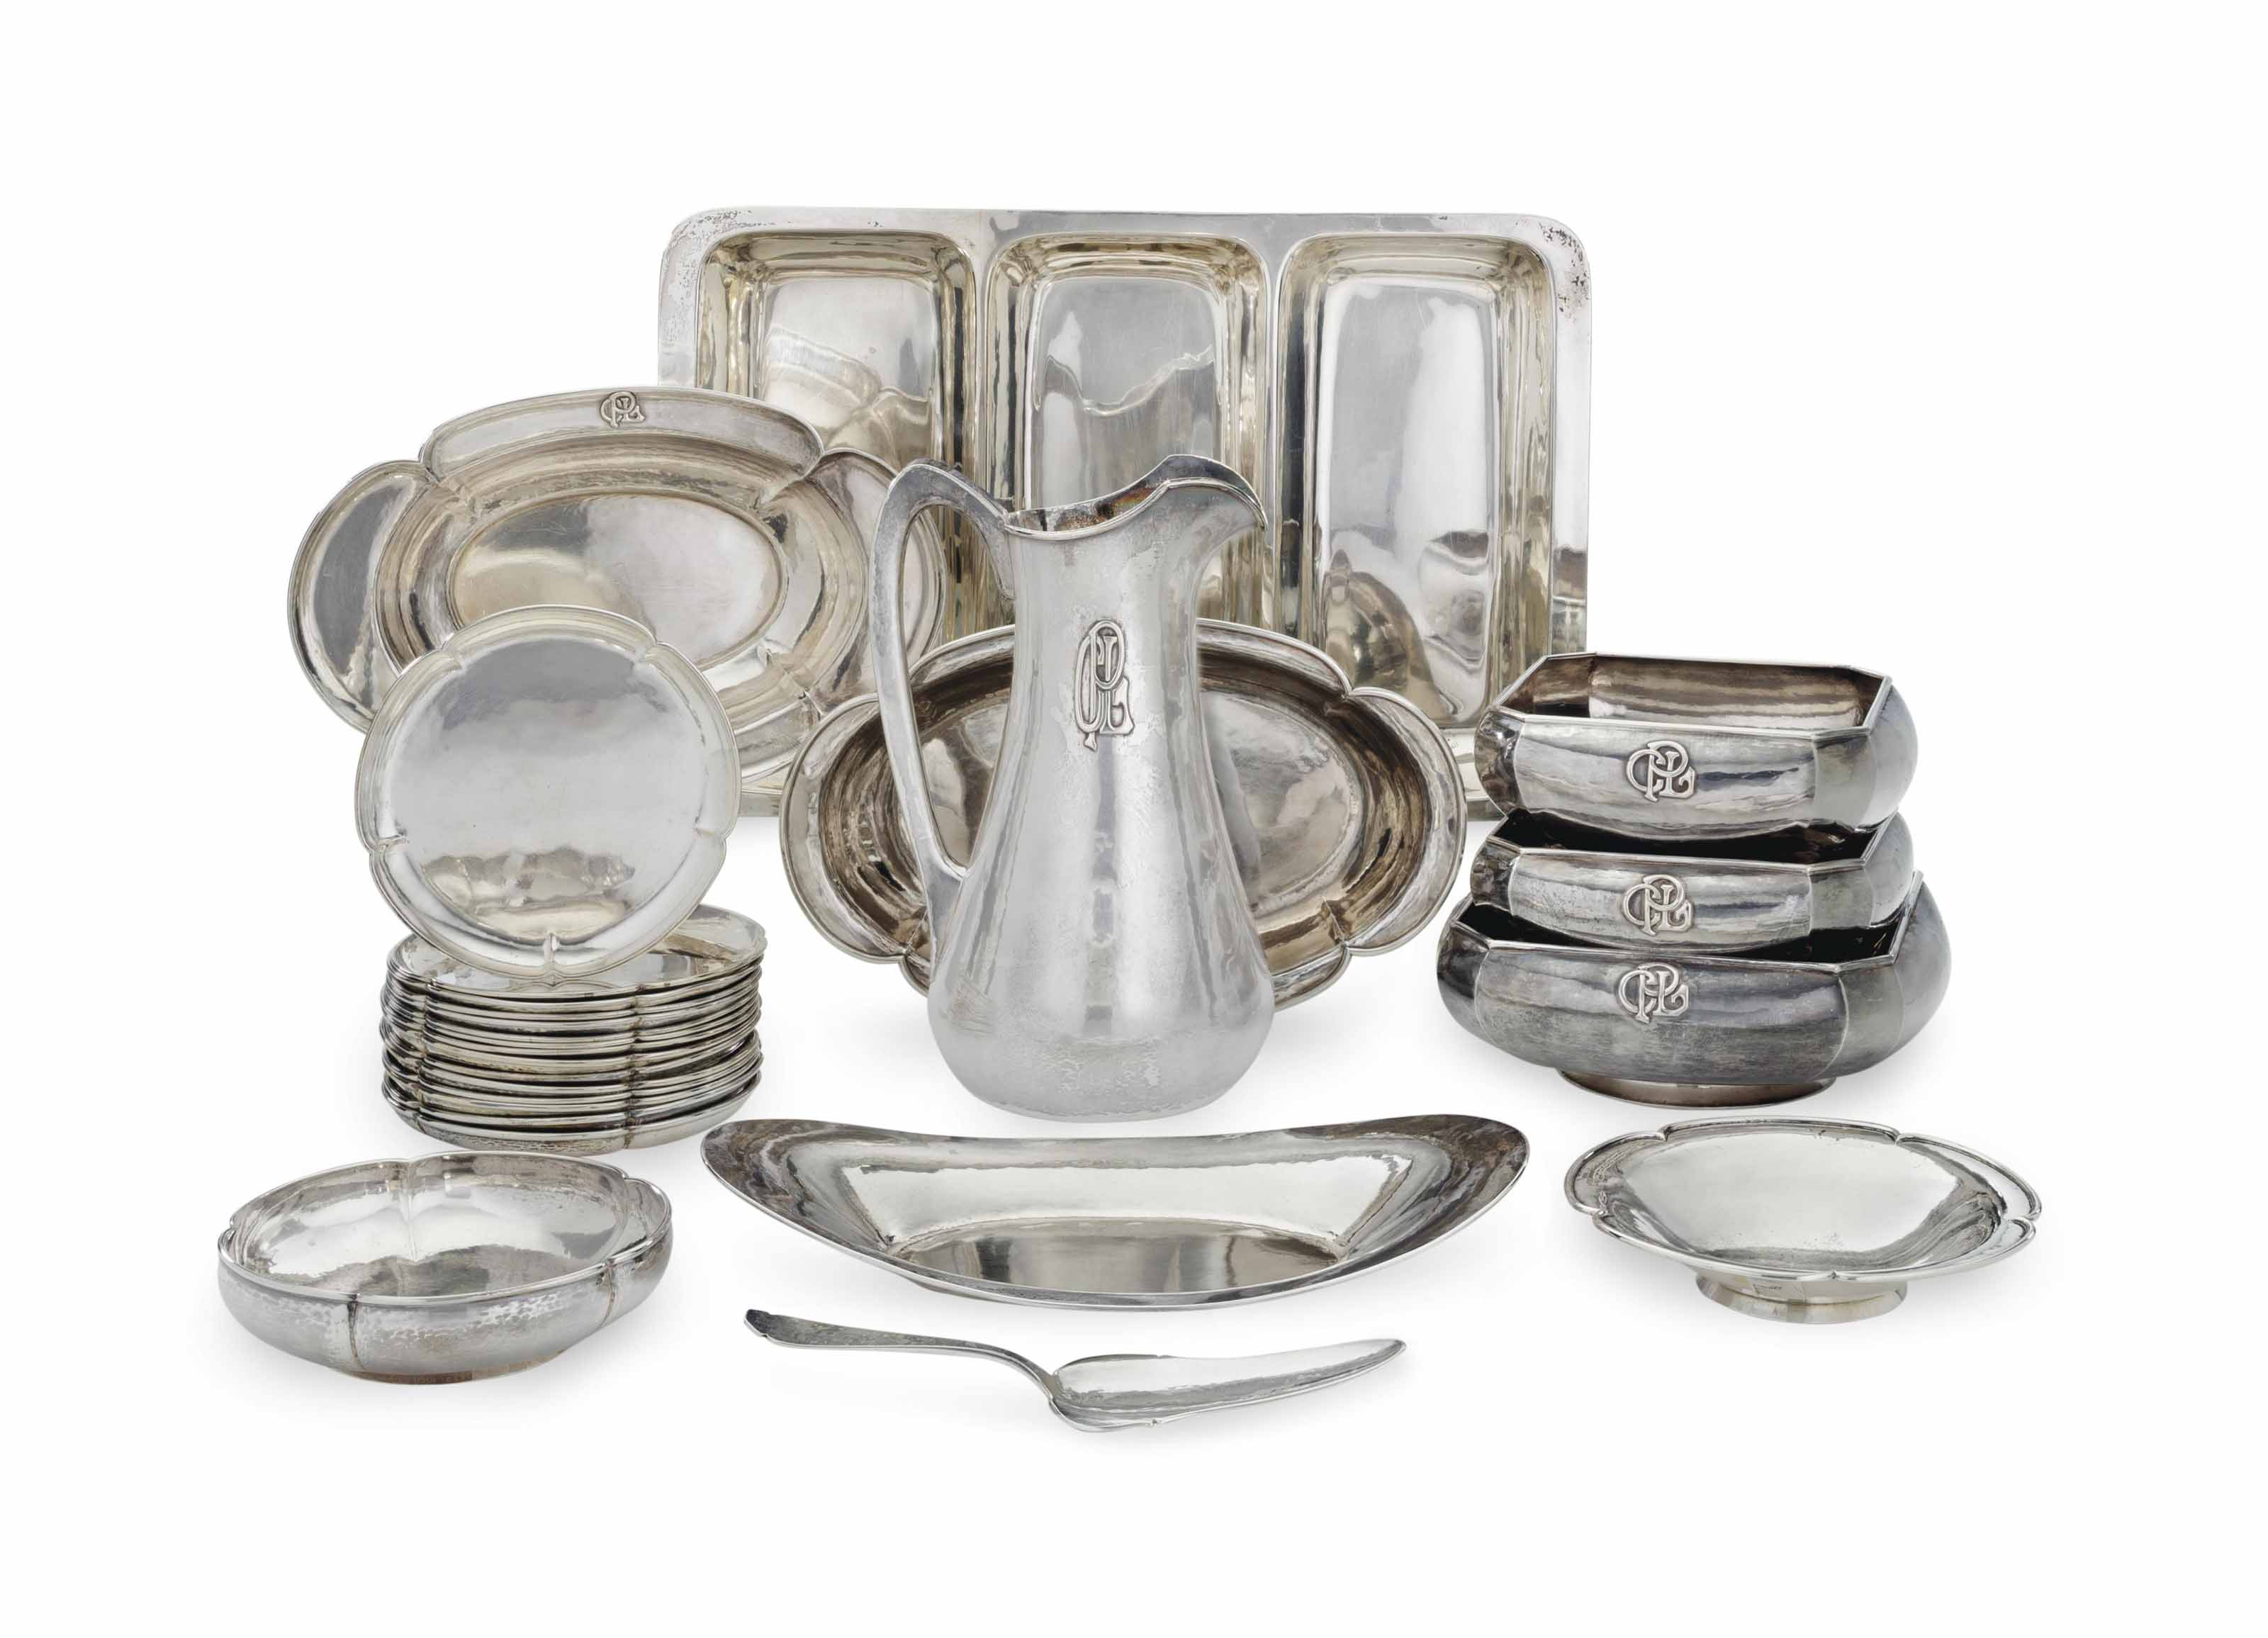 A GROUP OF AMERICAN SILVER SERVING WARES